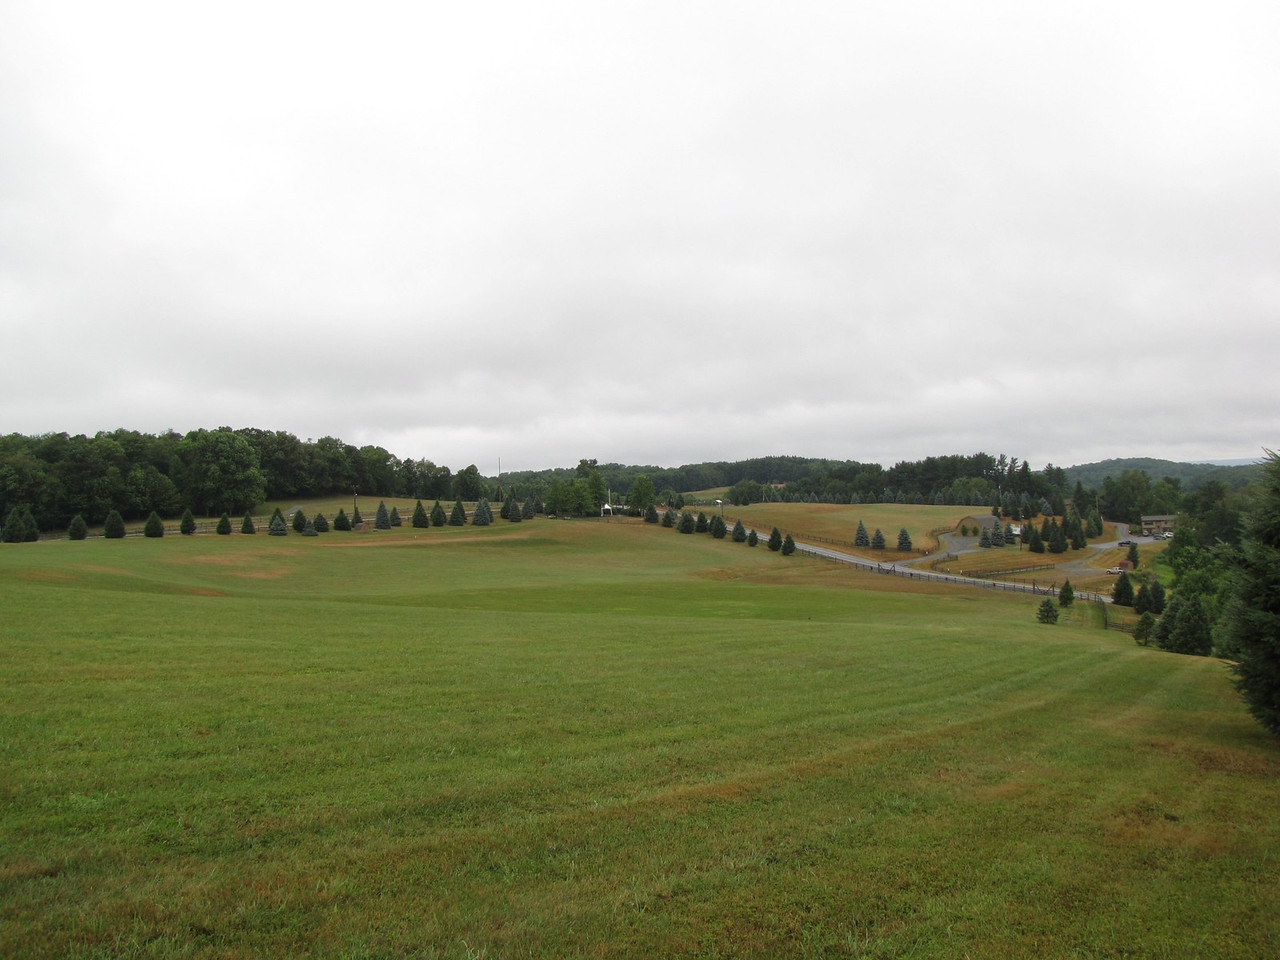 Woodstock hill, looking down to the stage.